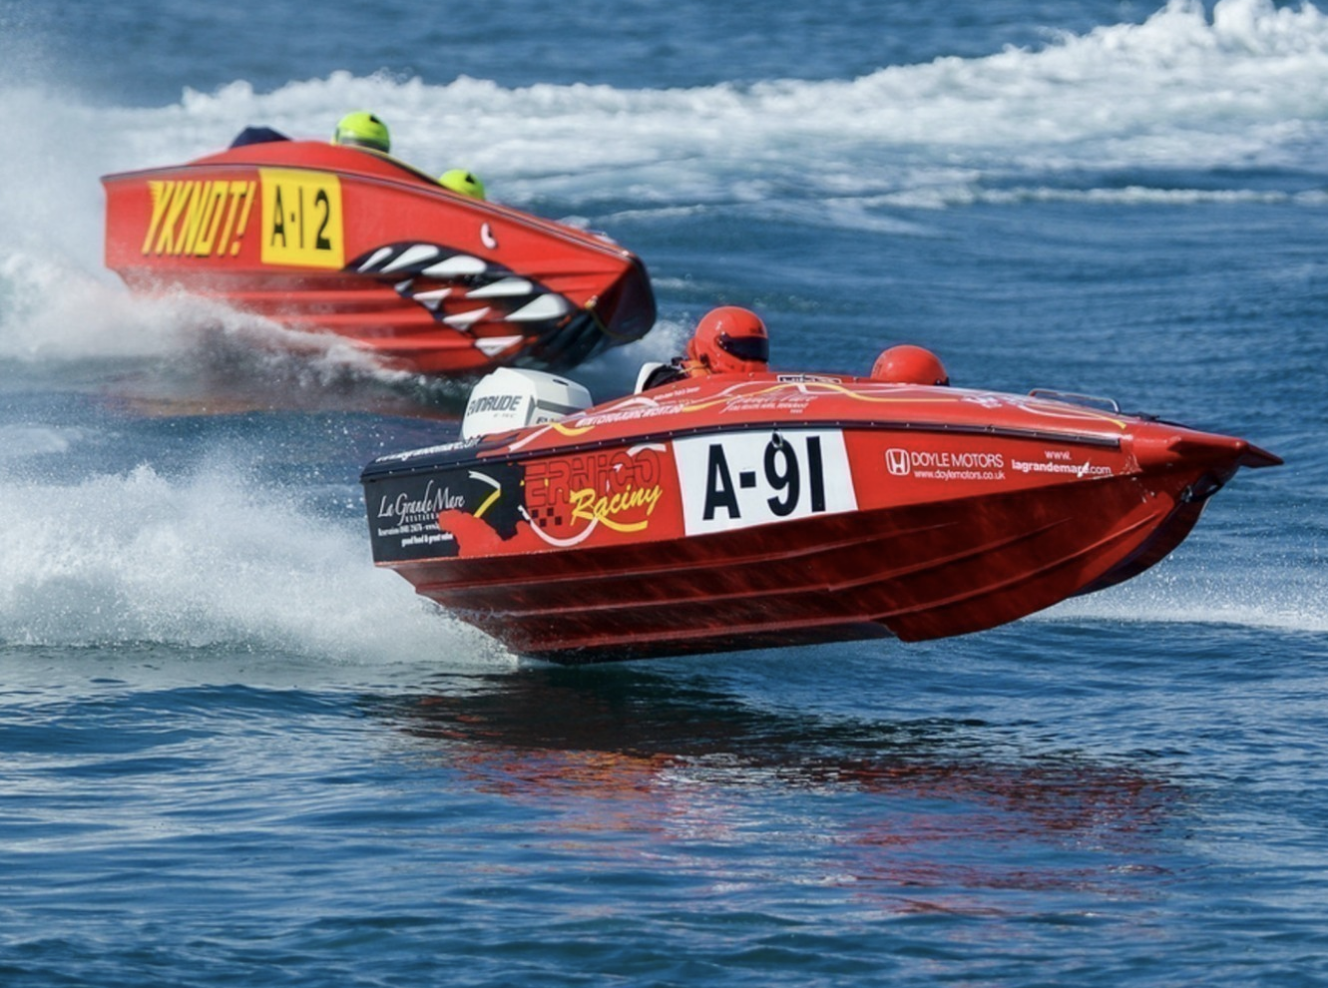 Australia Formula Powerboat GP 2019